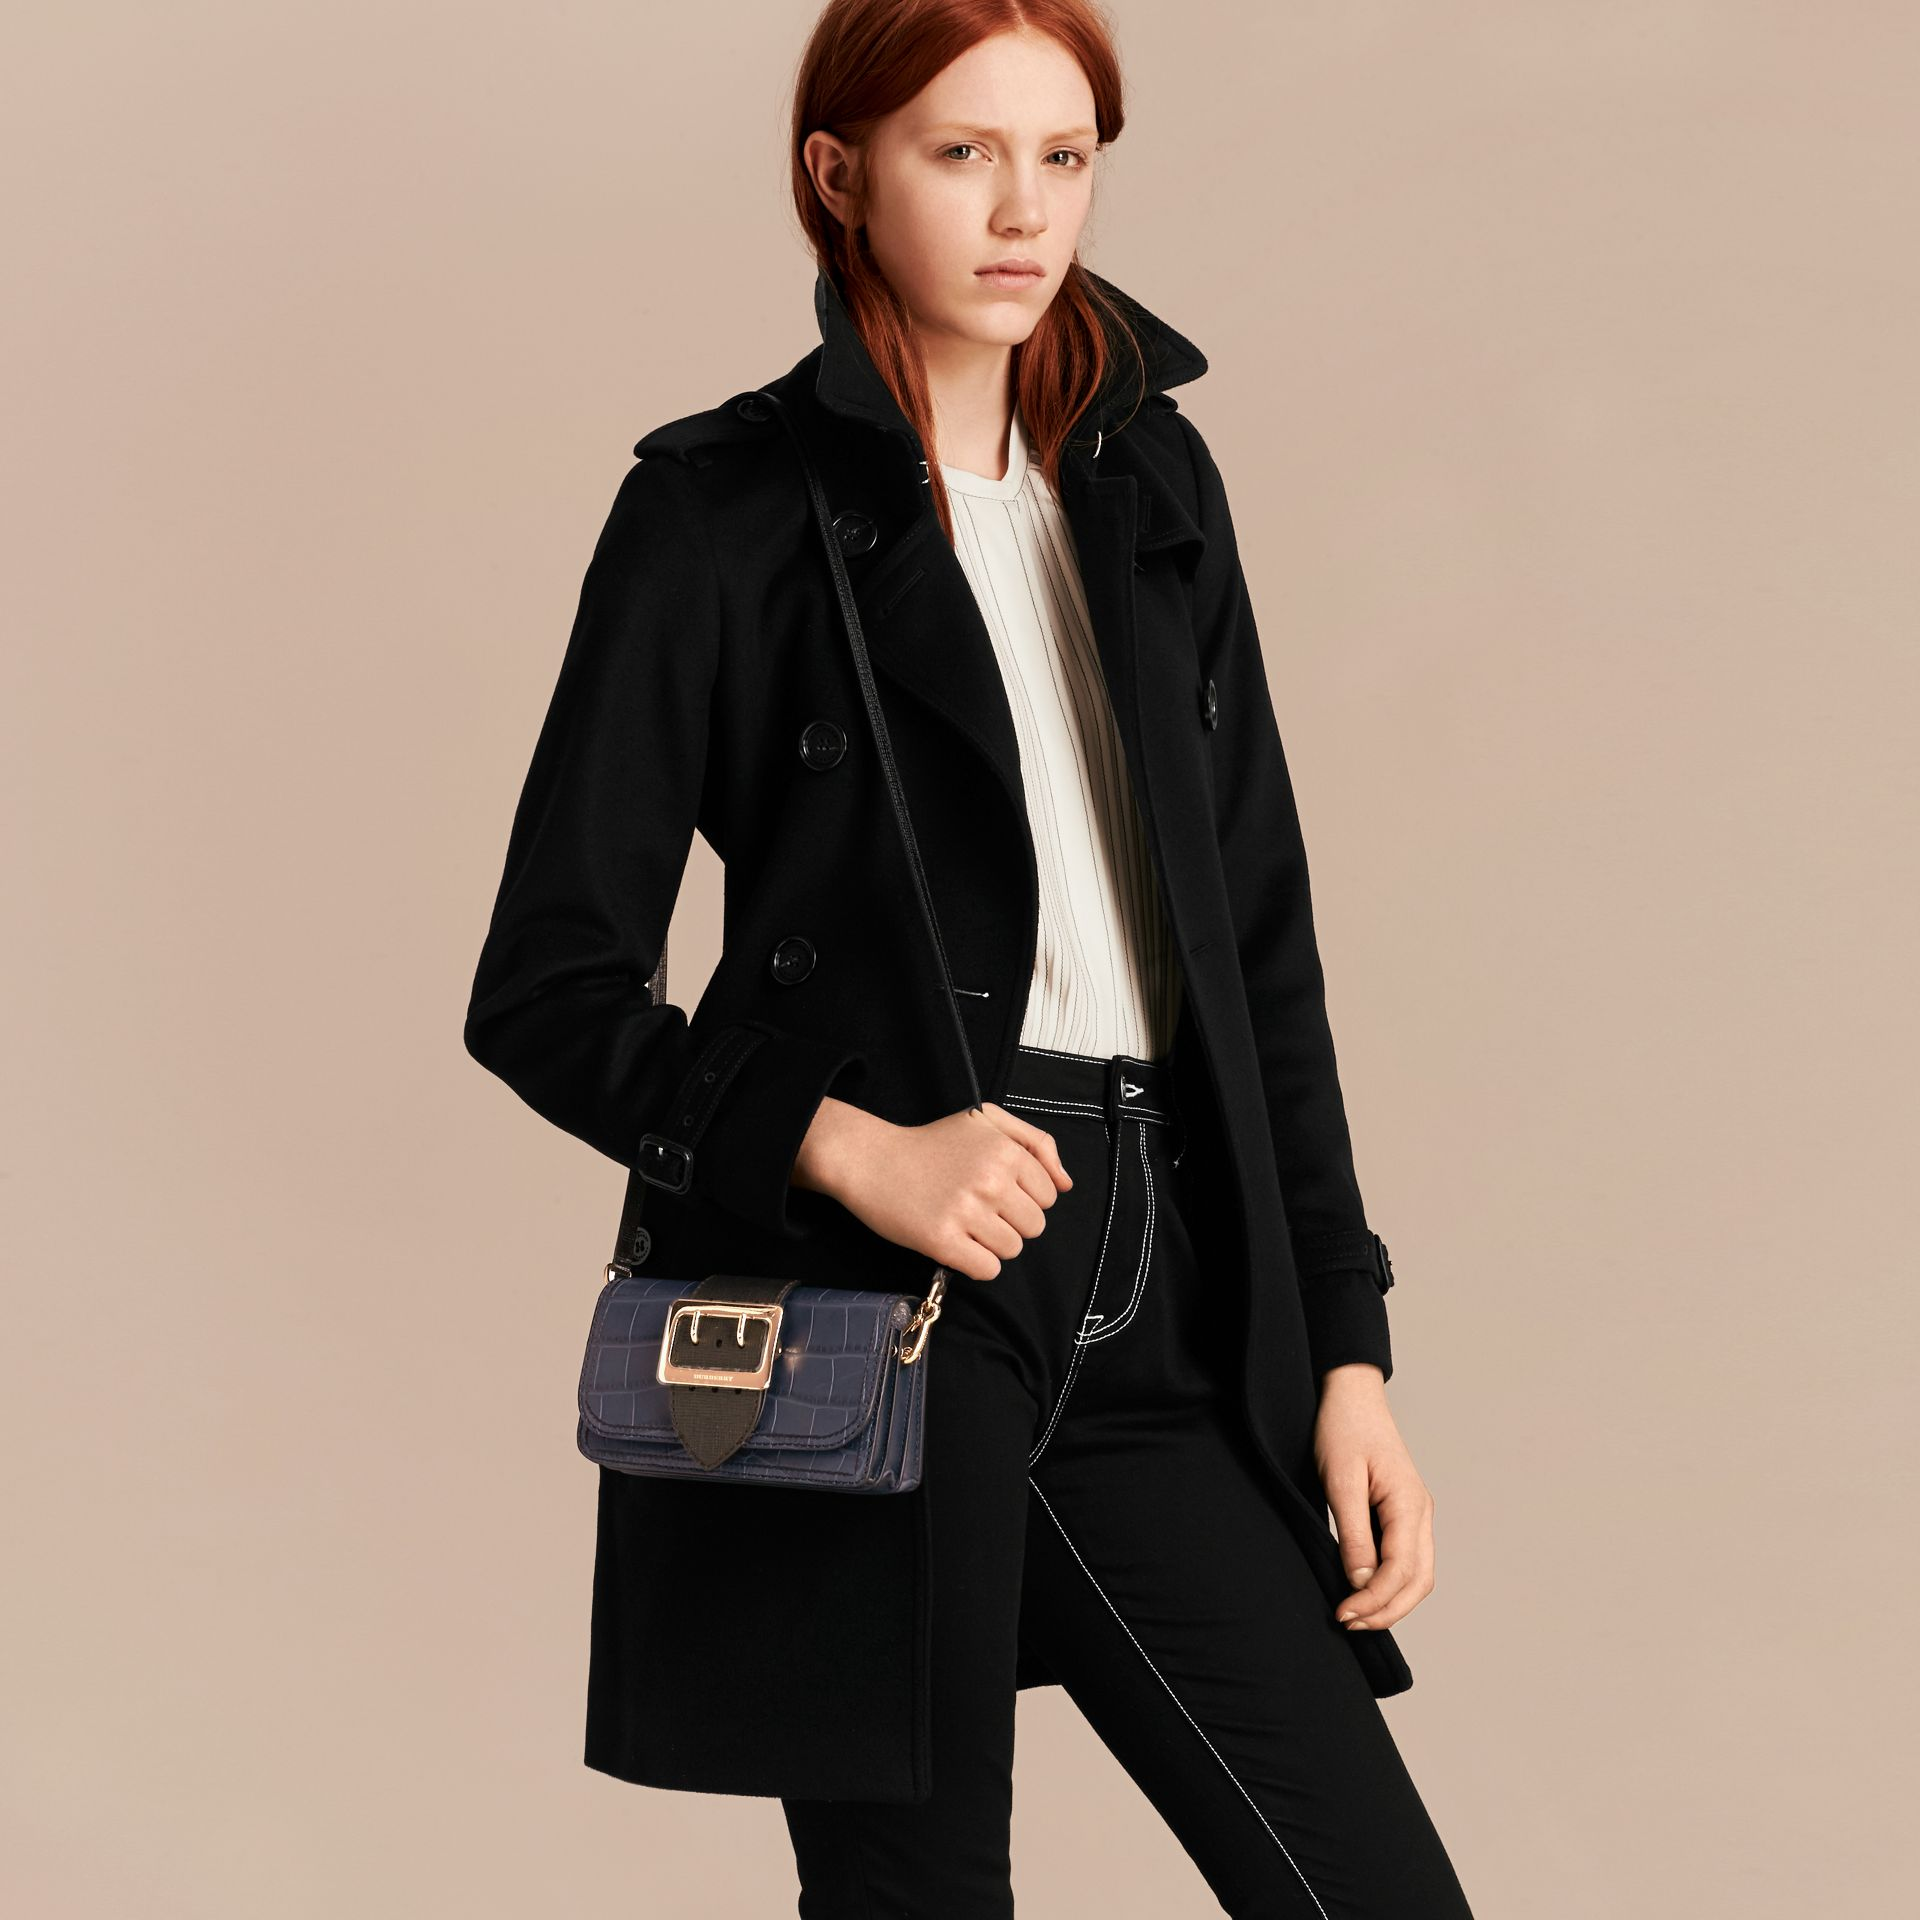 Petit sac The Buckle en alligator et cuir (Marine/noir) - Femme | Burberry - photo de la galerie 4